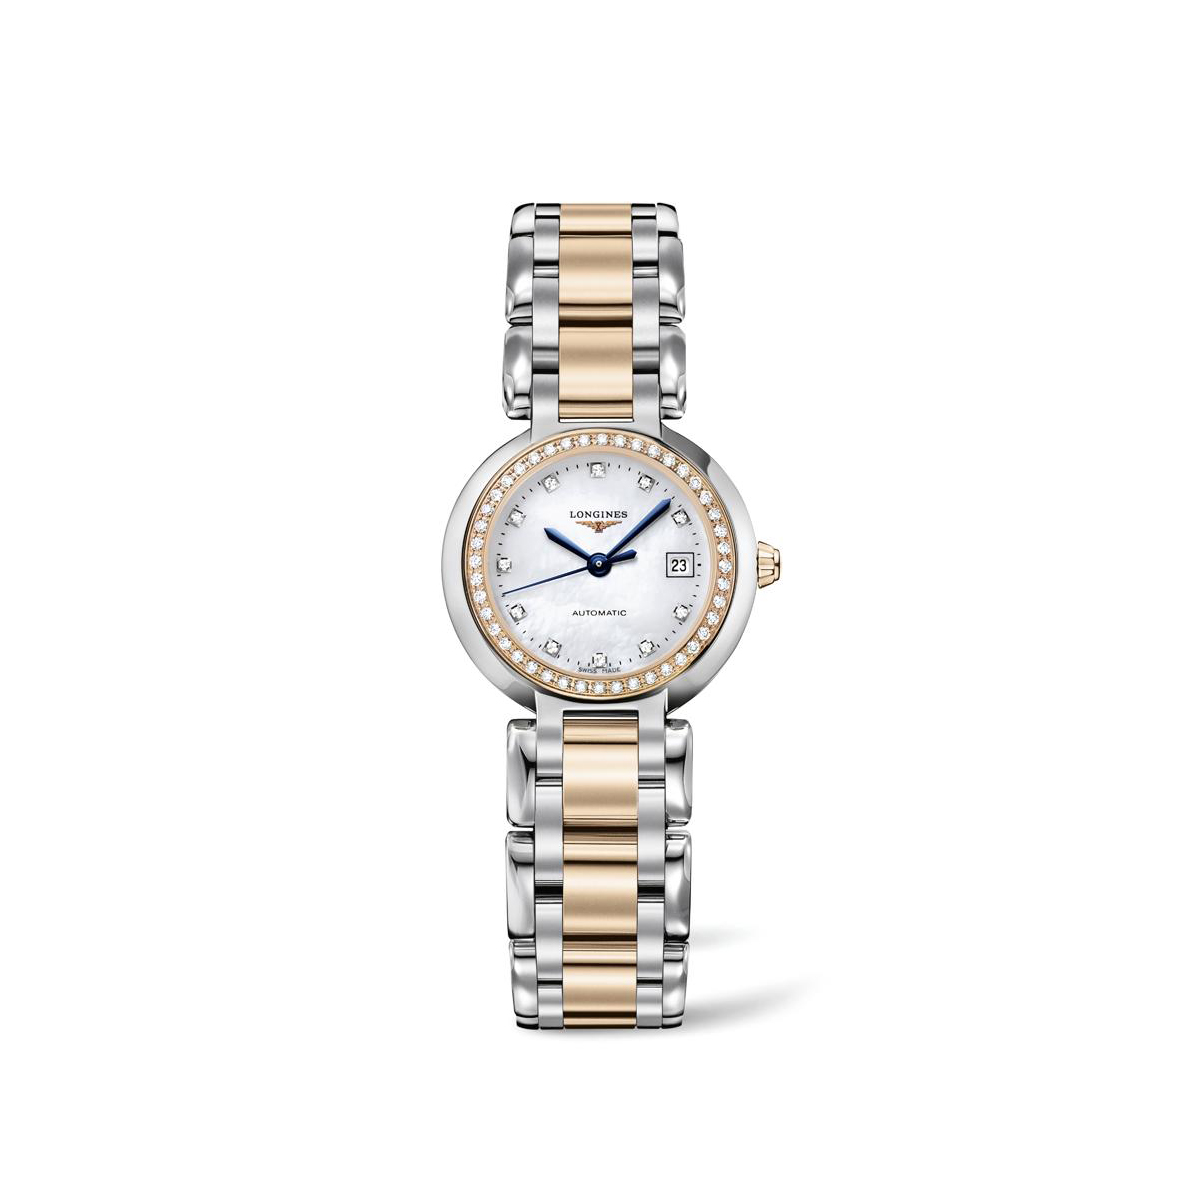 L81115896 — Longines PrimaLuna 26mm Stainless Steel/Gold 18K Automatic